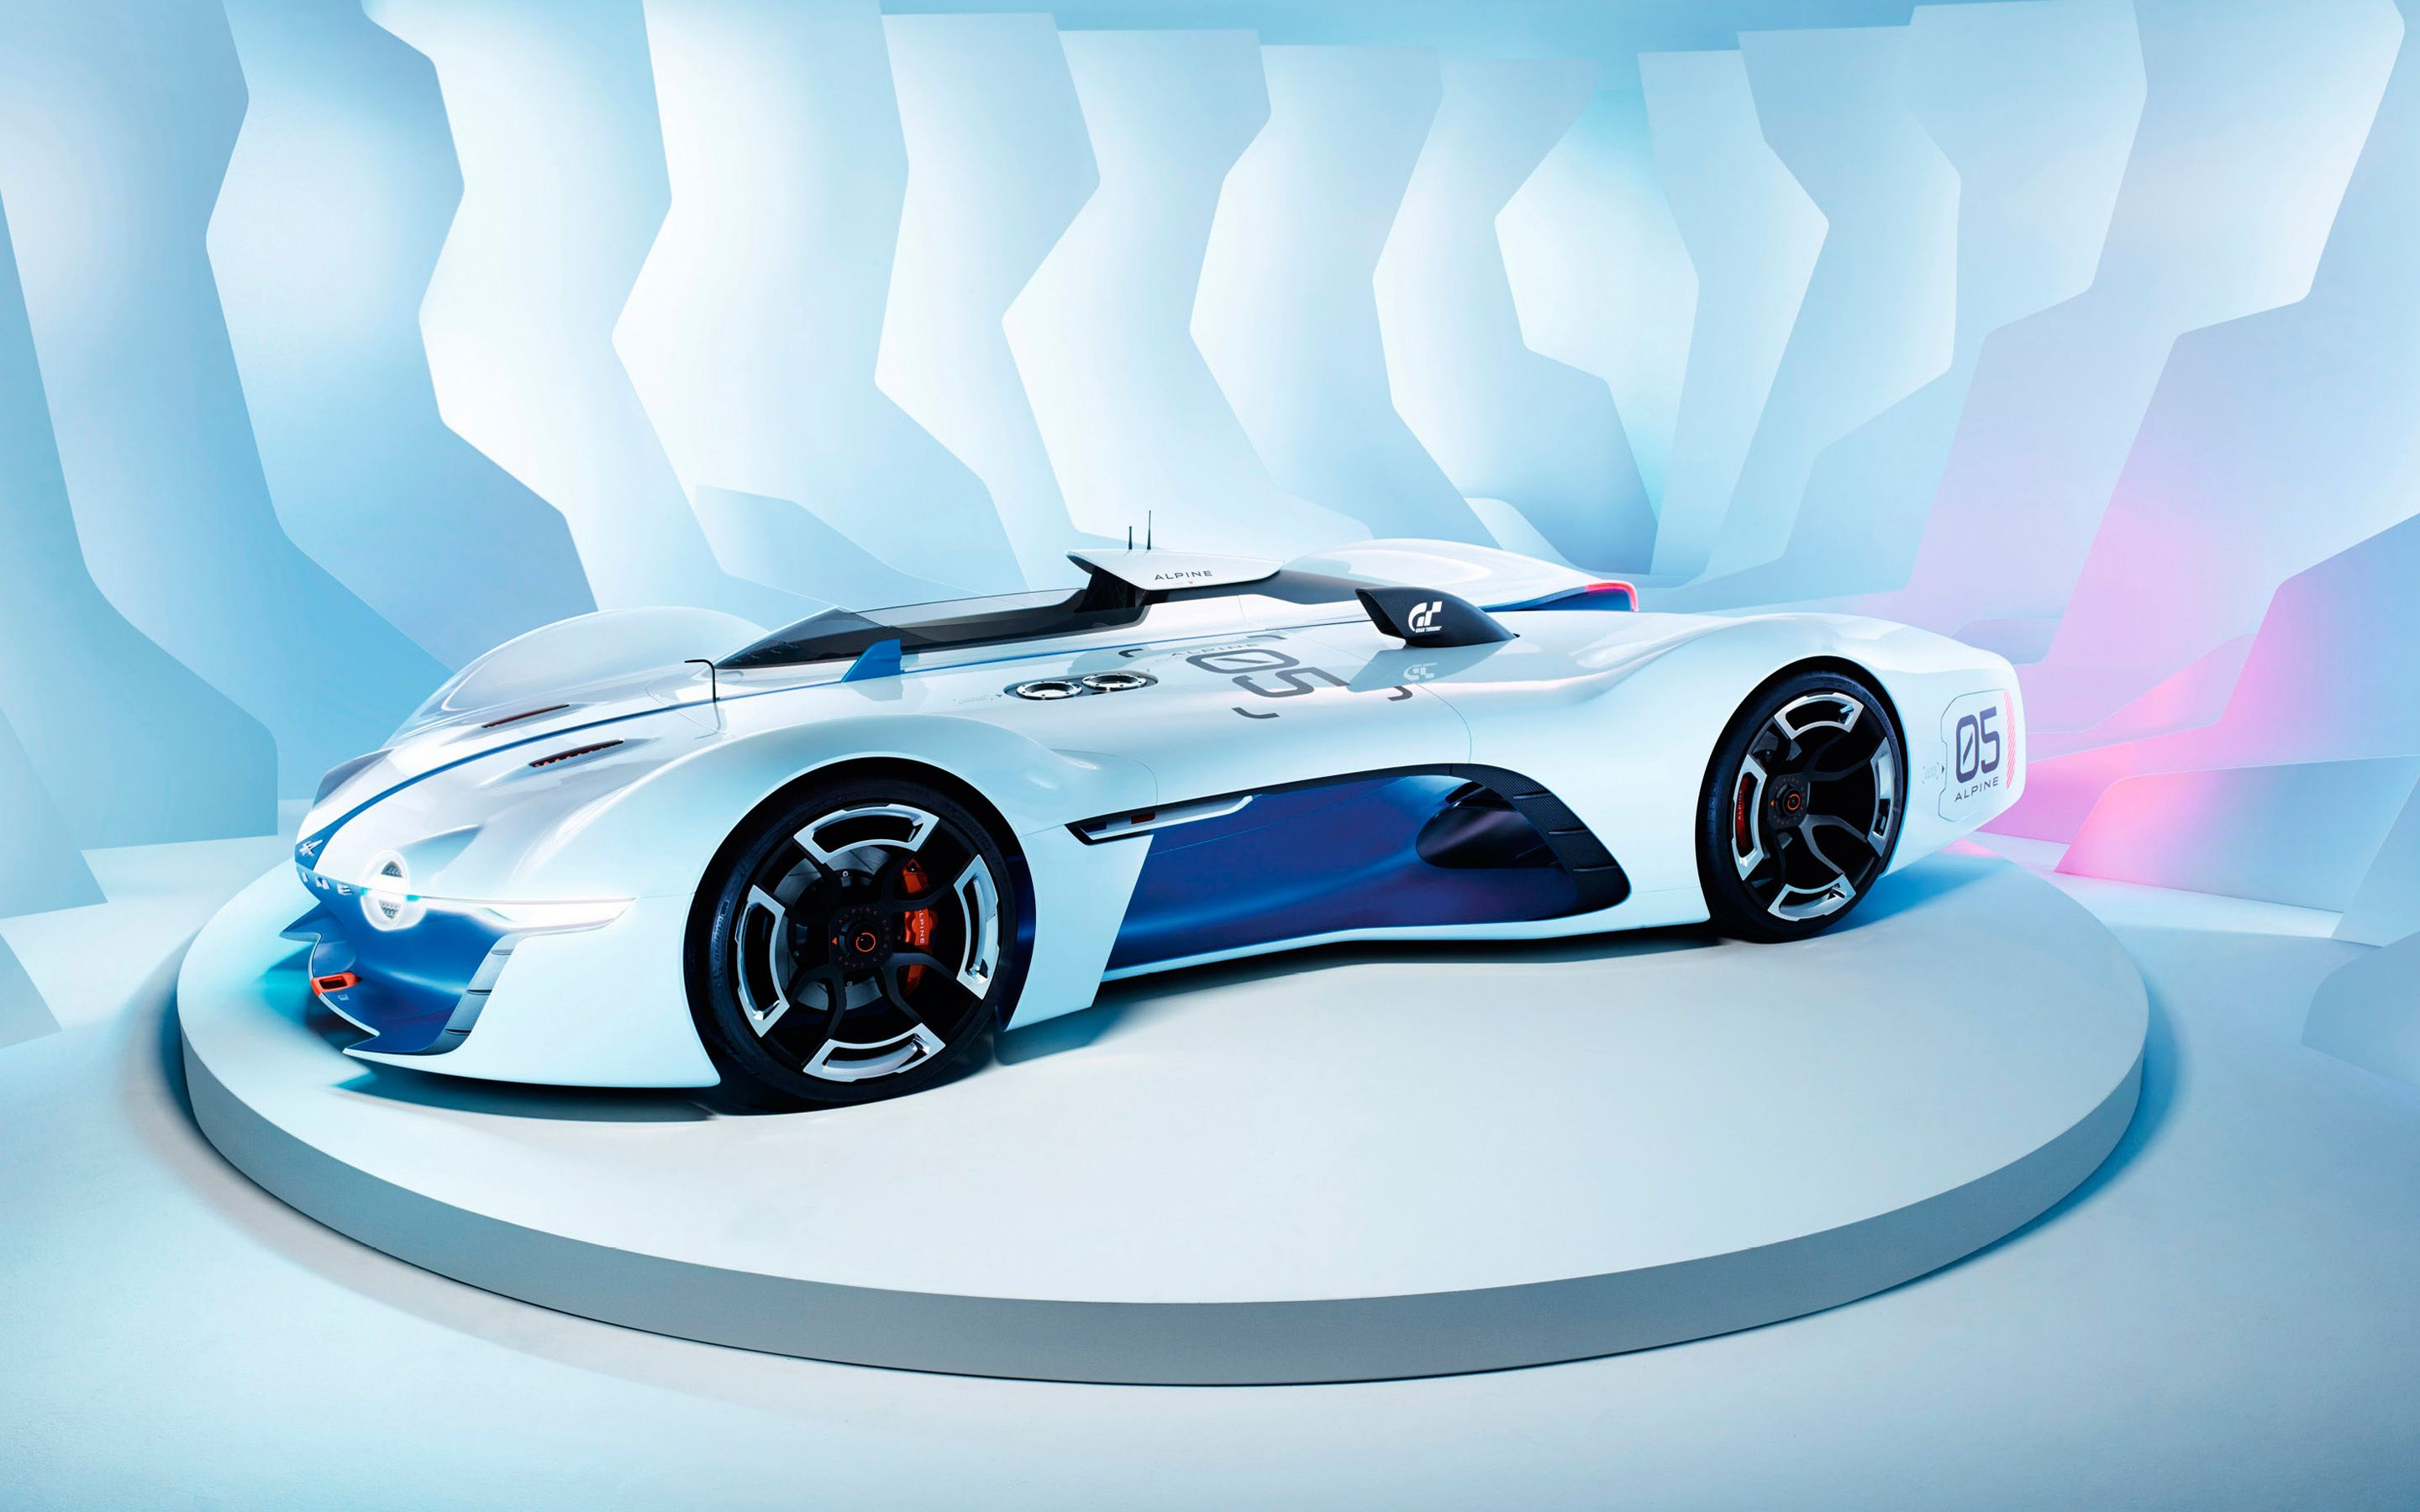 60 Hd Car Wallpapers And Backgrounds 2015 Renault Alpine Alpine Vision Concept Cars